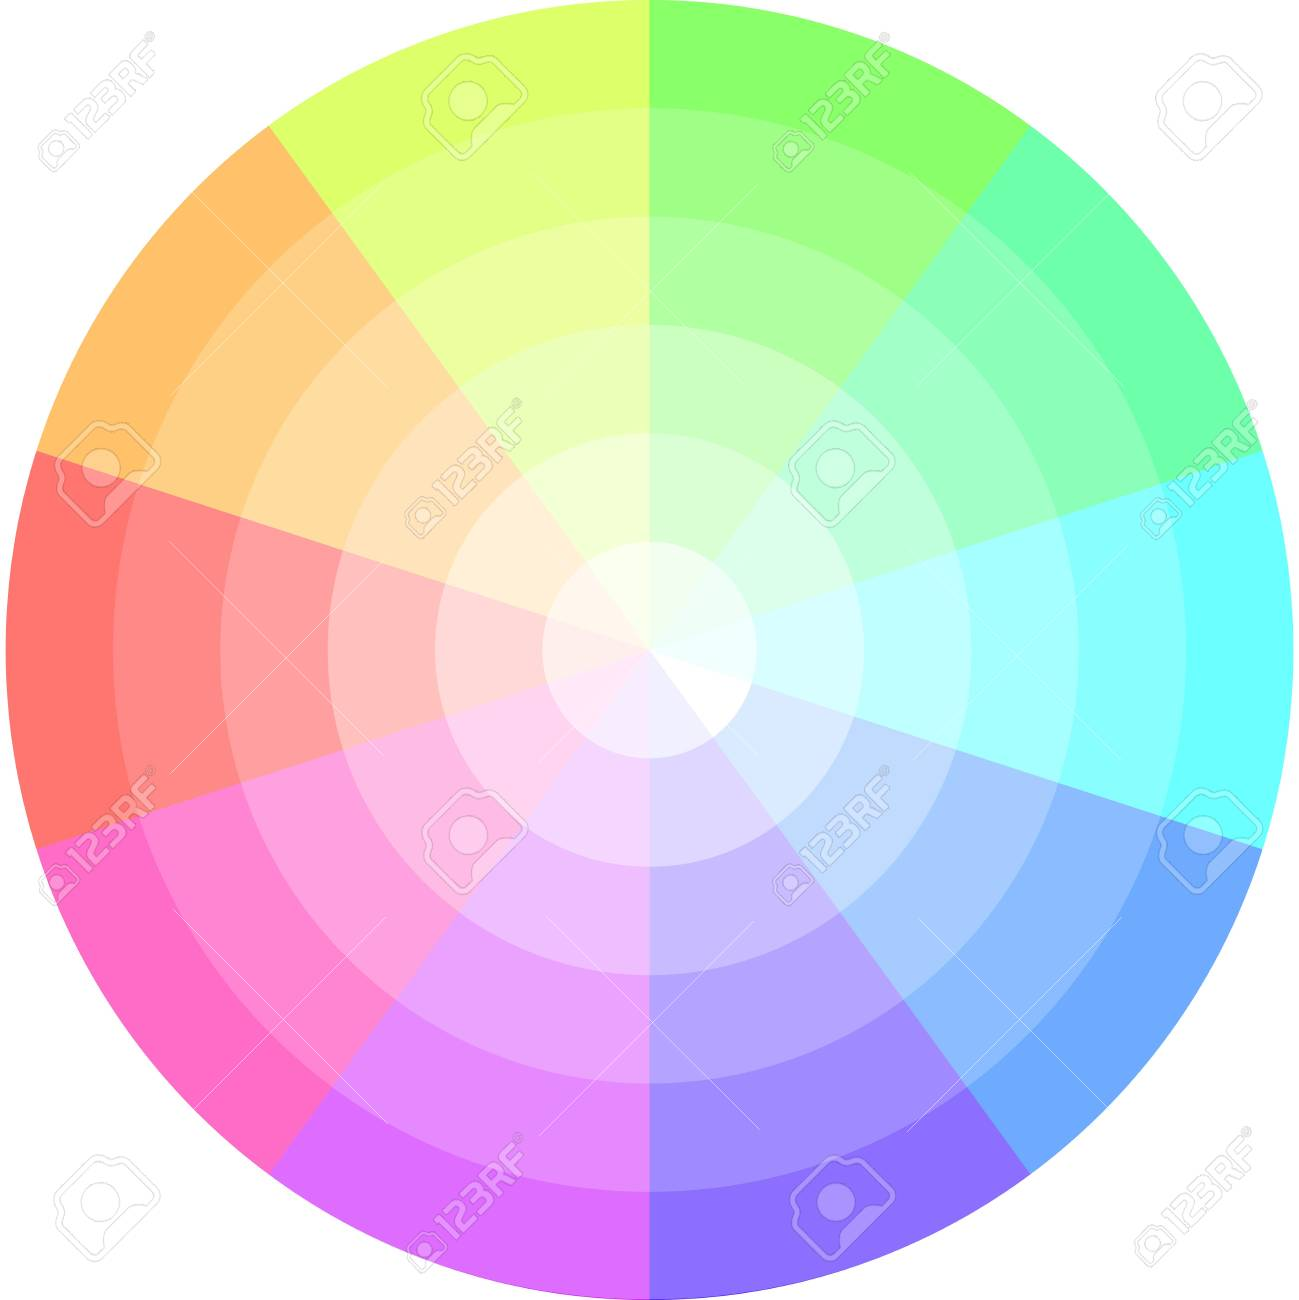 palette of pastel colors vector pie chart royalty free cliparts rh 123rf com pie chart vector psd pie chart vector free download